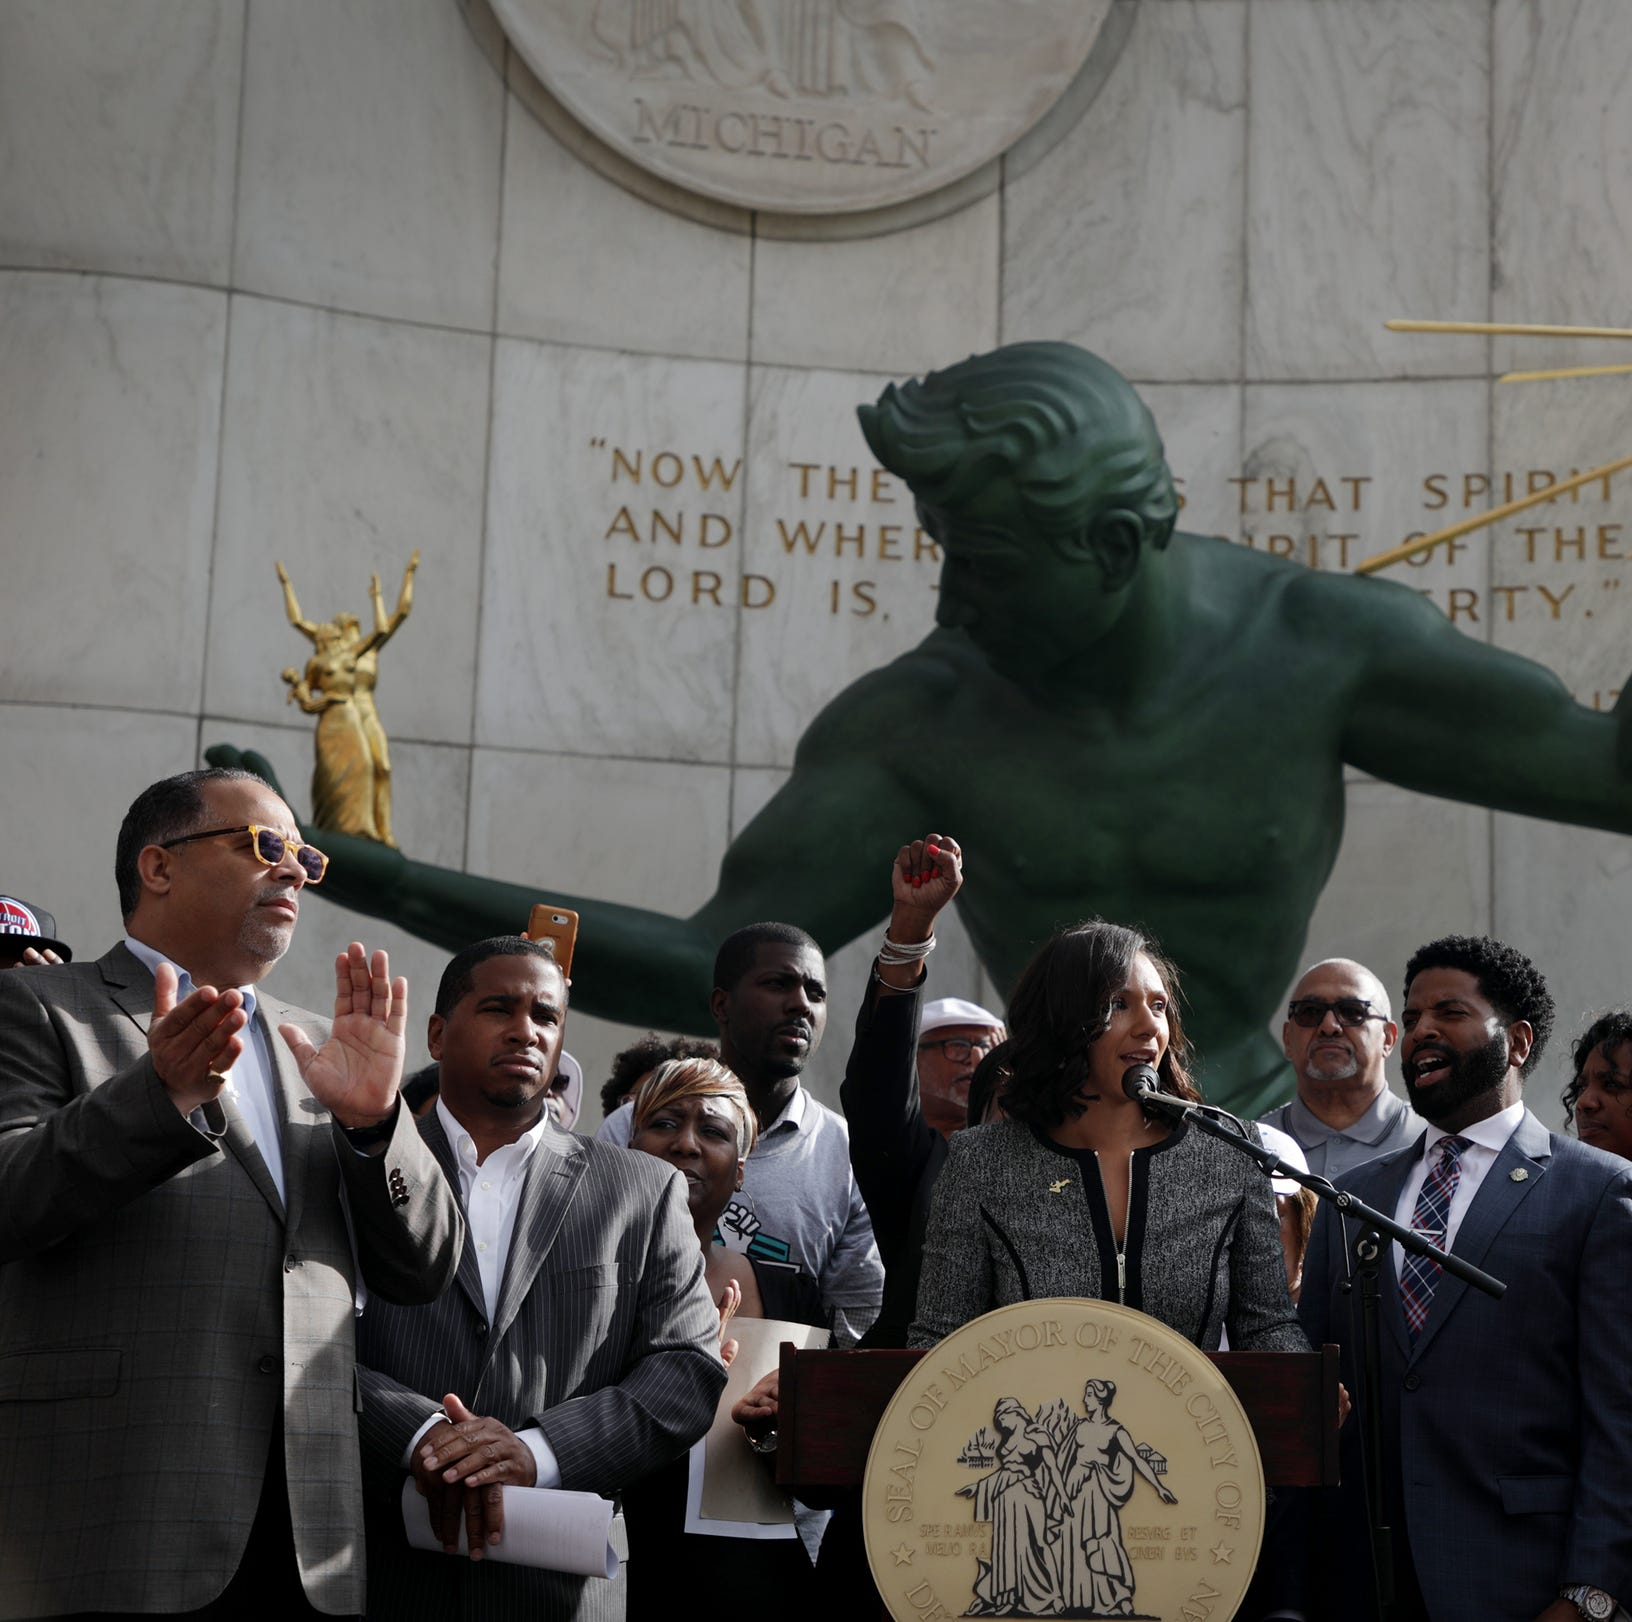 Mary Sheffield: Detroit's balanced budget has a moral deficit